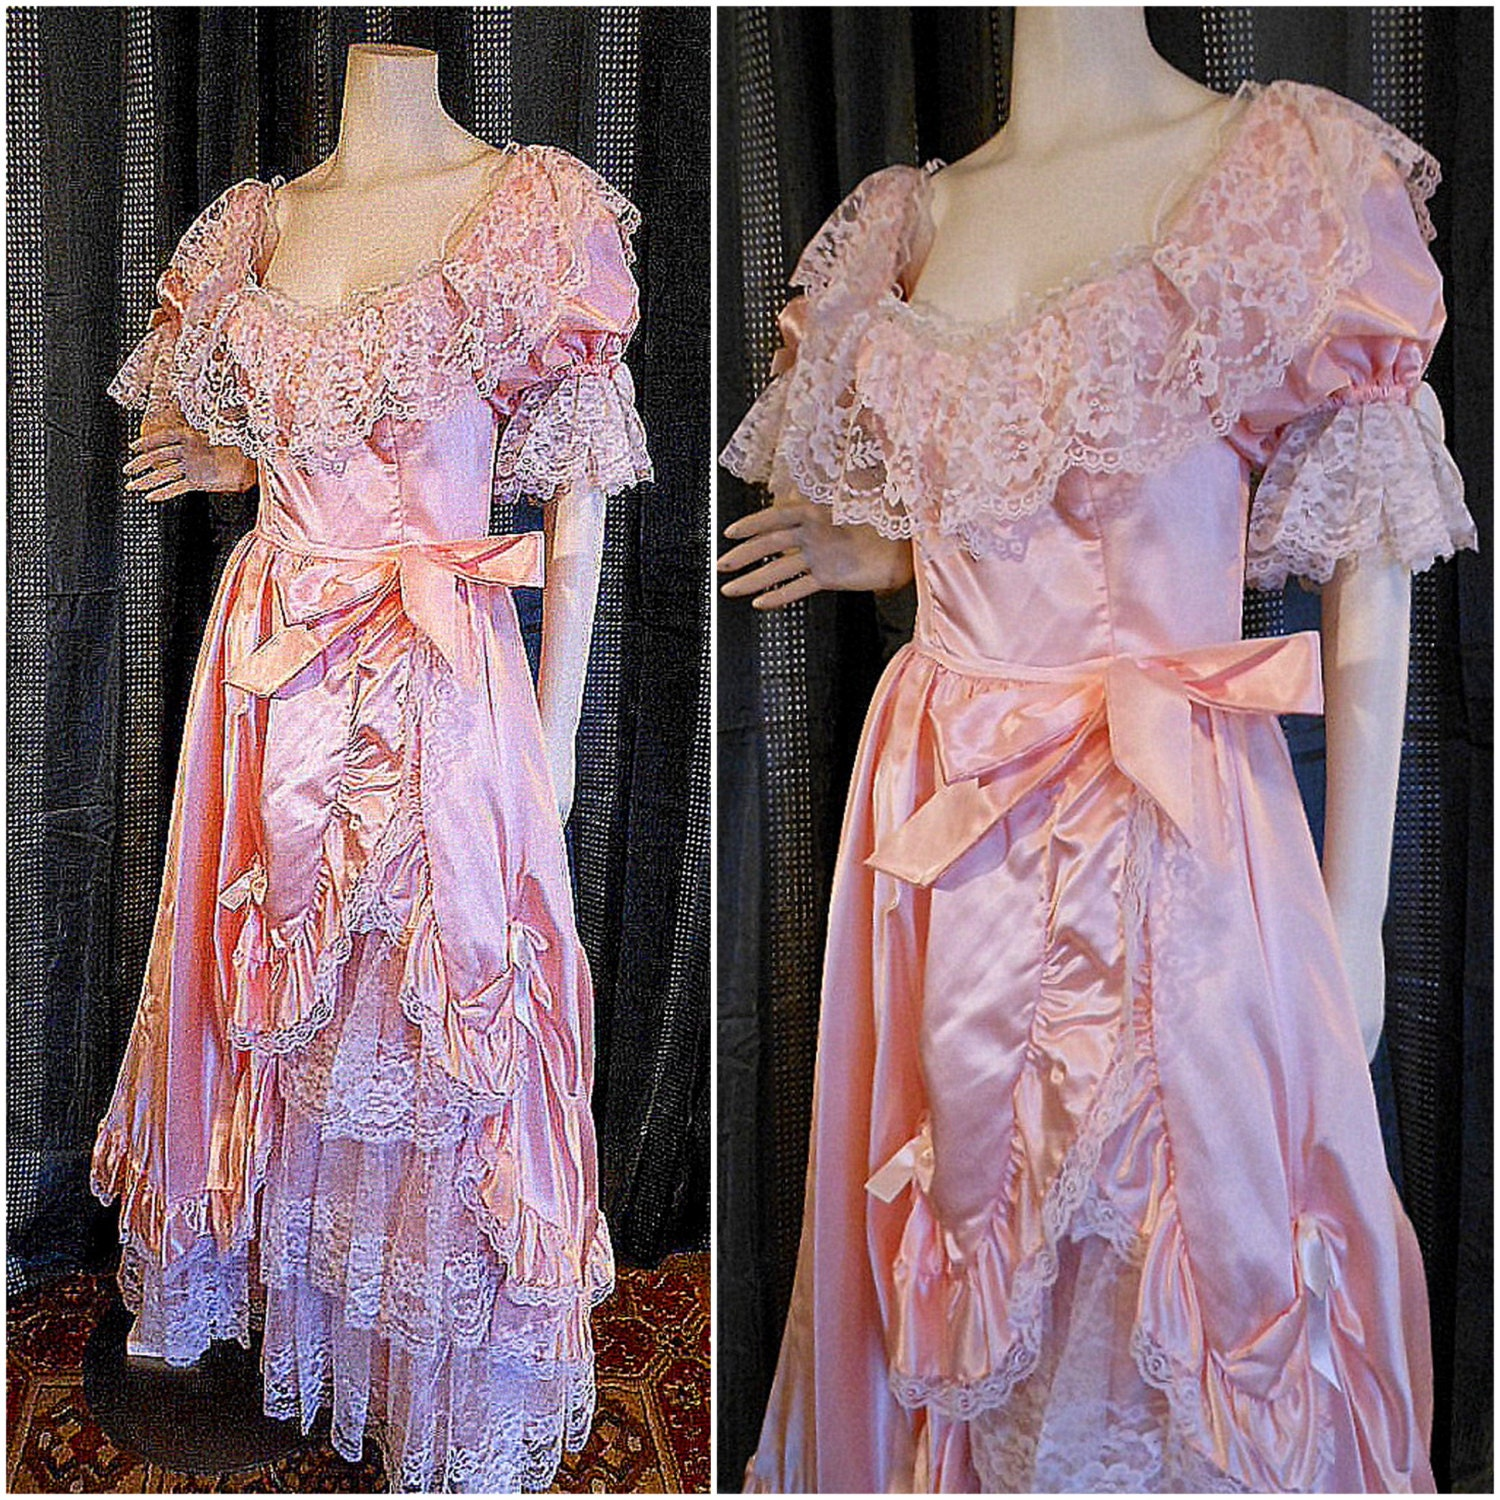 Vintage Wedding Dresses 80s: Vintage 70s-80s Victorian Gown Dress Pink Lace Ruffled